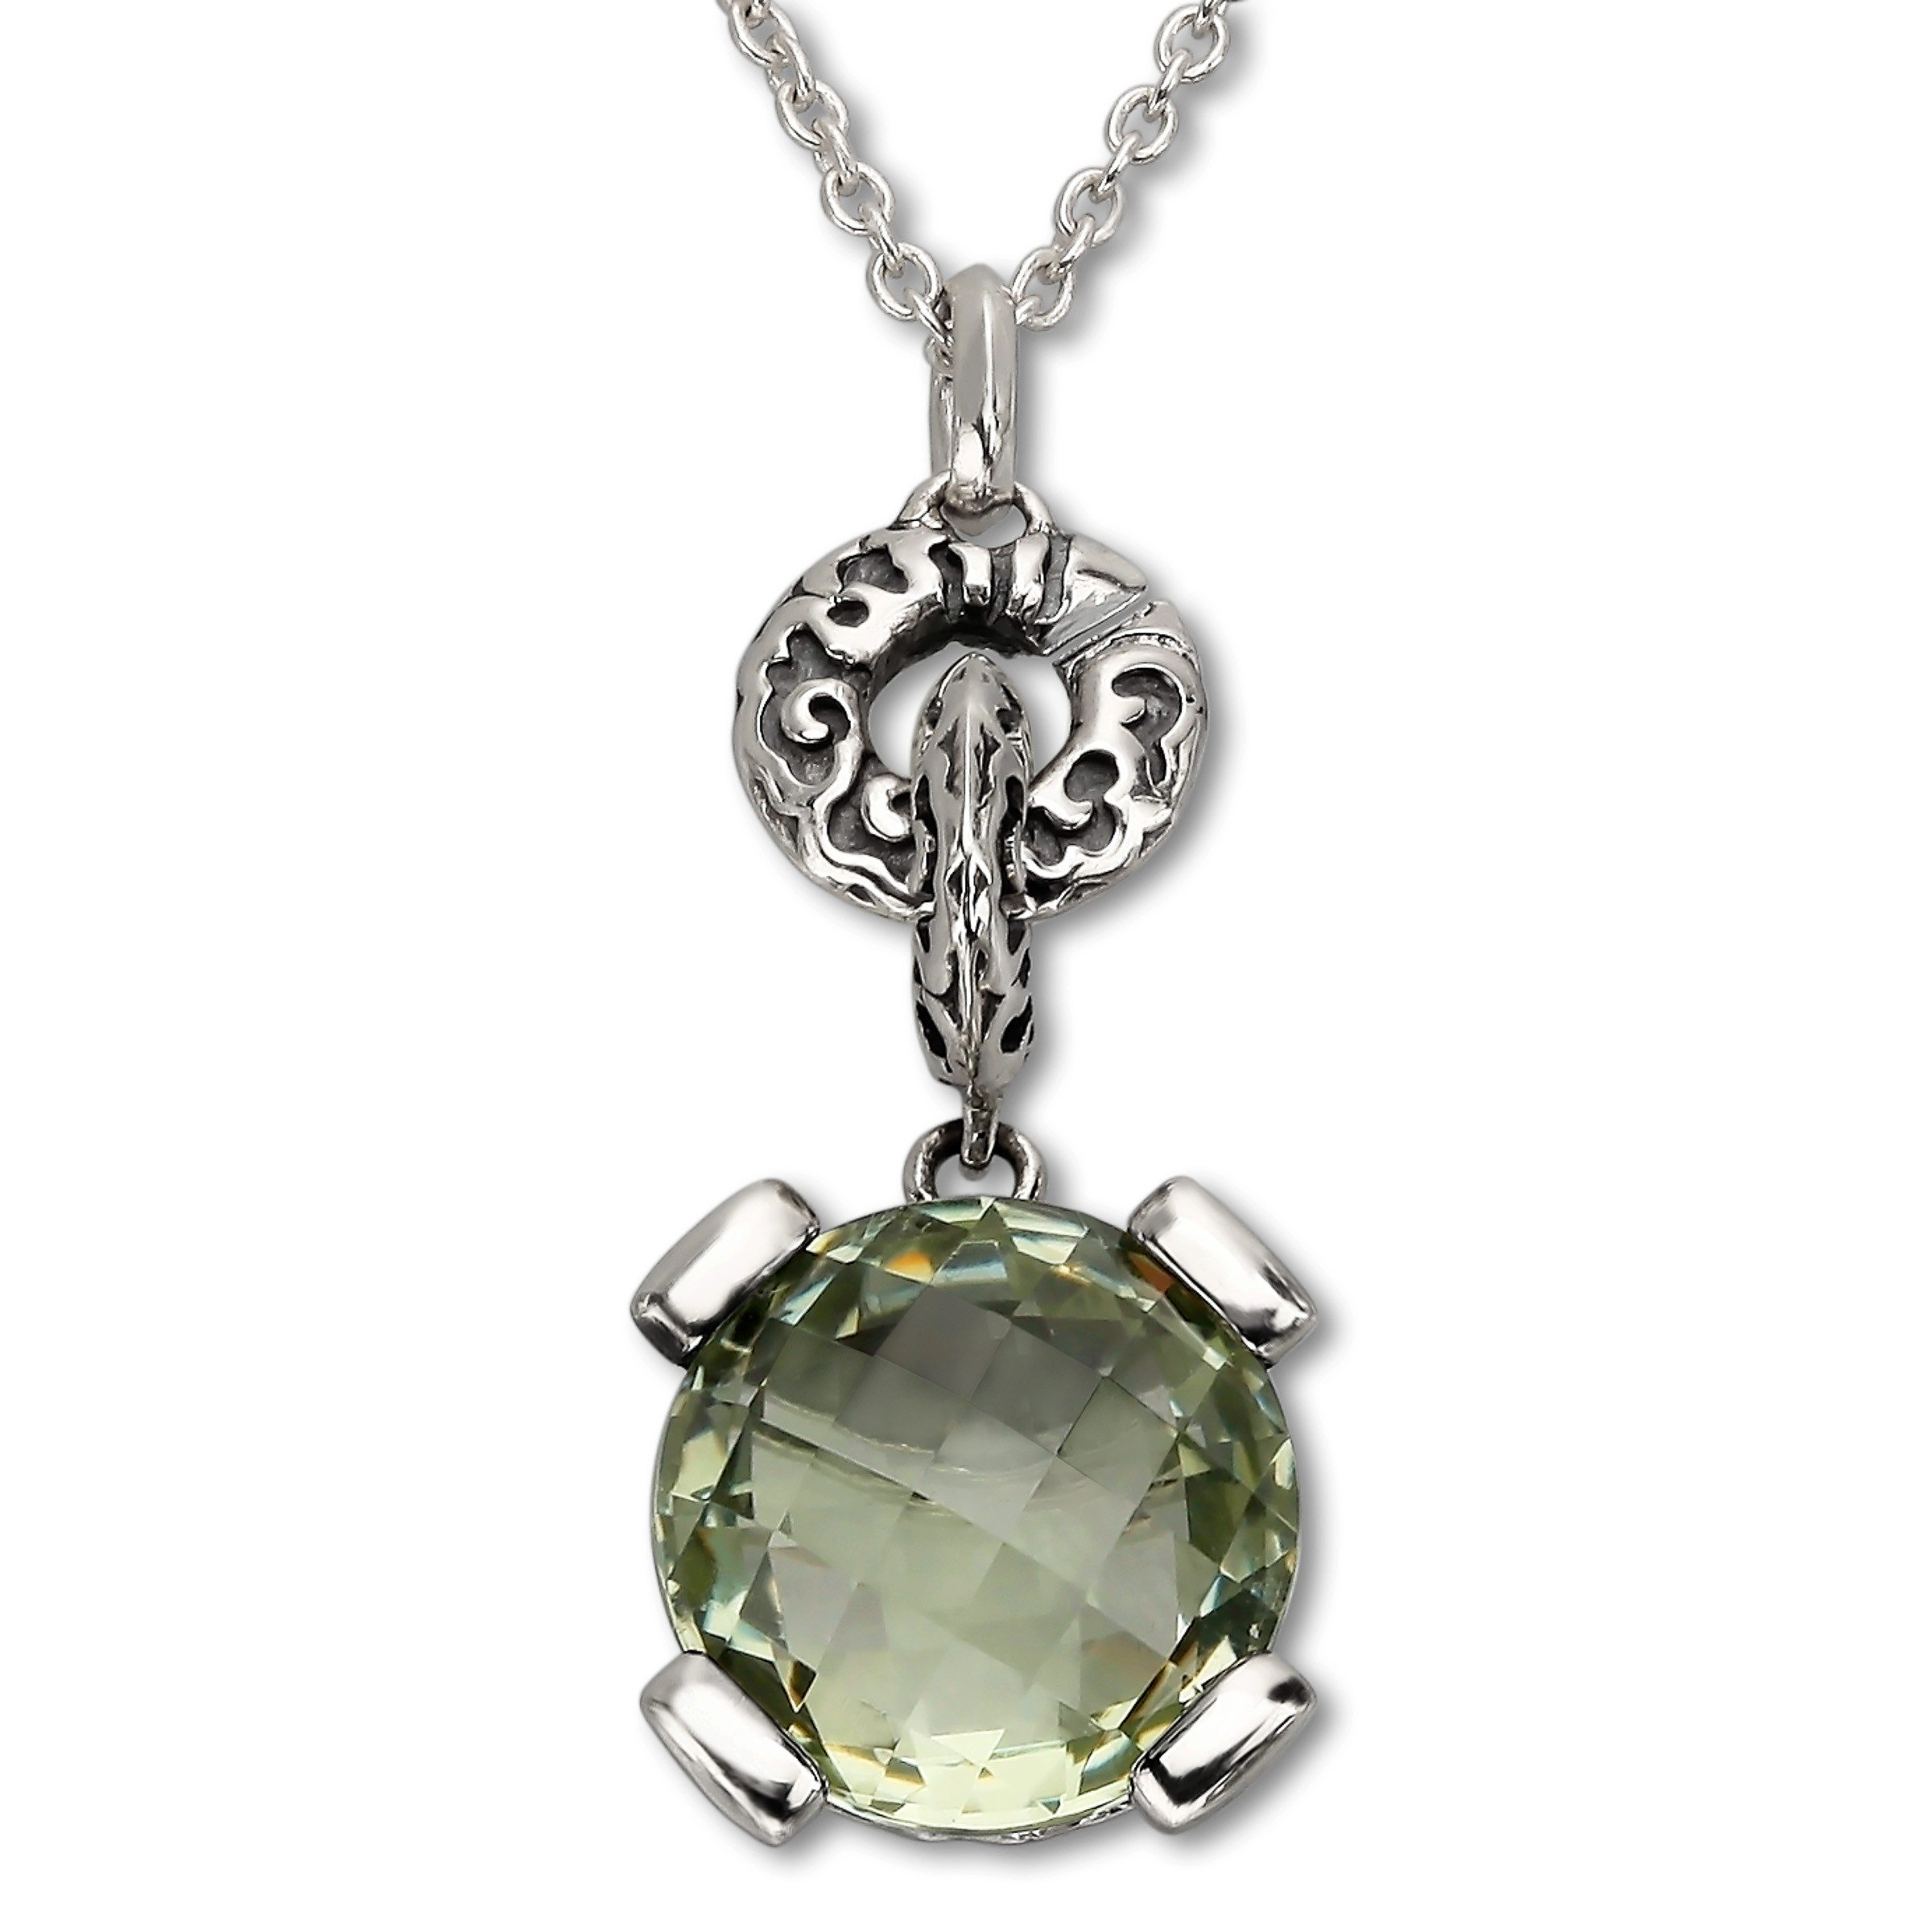 Evert Degraeve 6 ct Green Amethyst Pendant Necklace in Sterling Silver